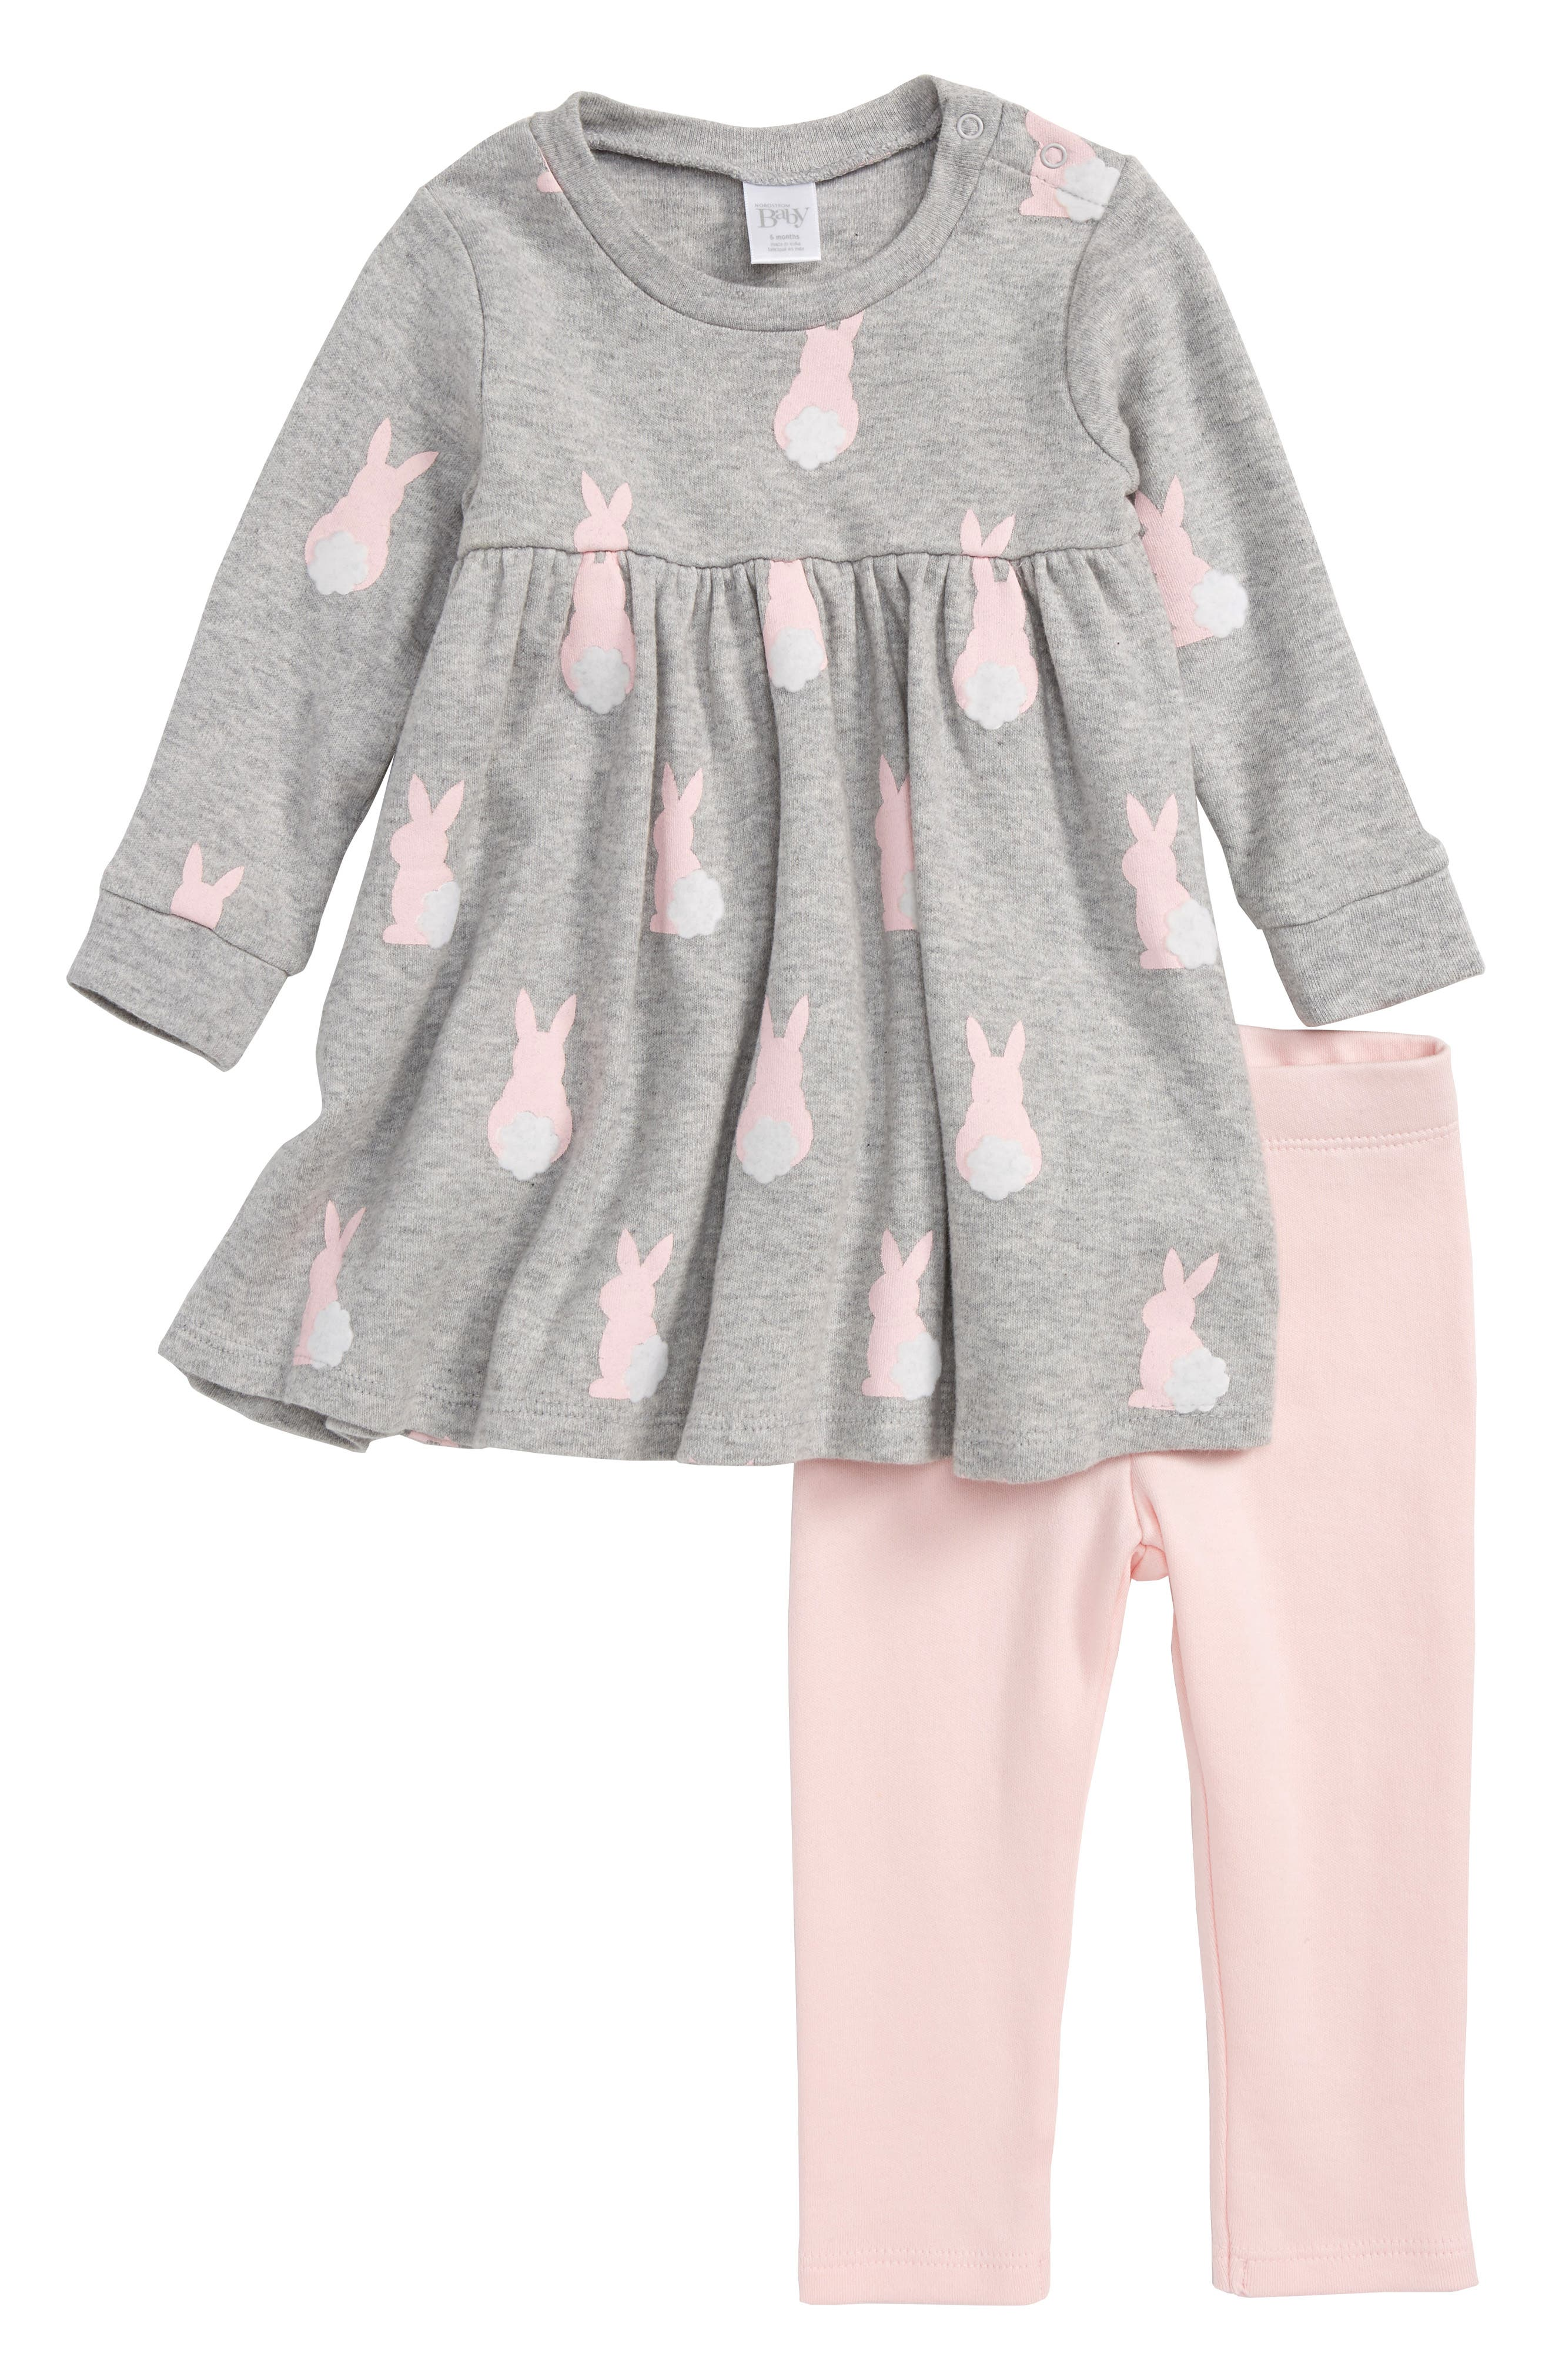 Nordstrom Baby Print Dress & Leggings Set (Baby Girls)